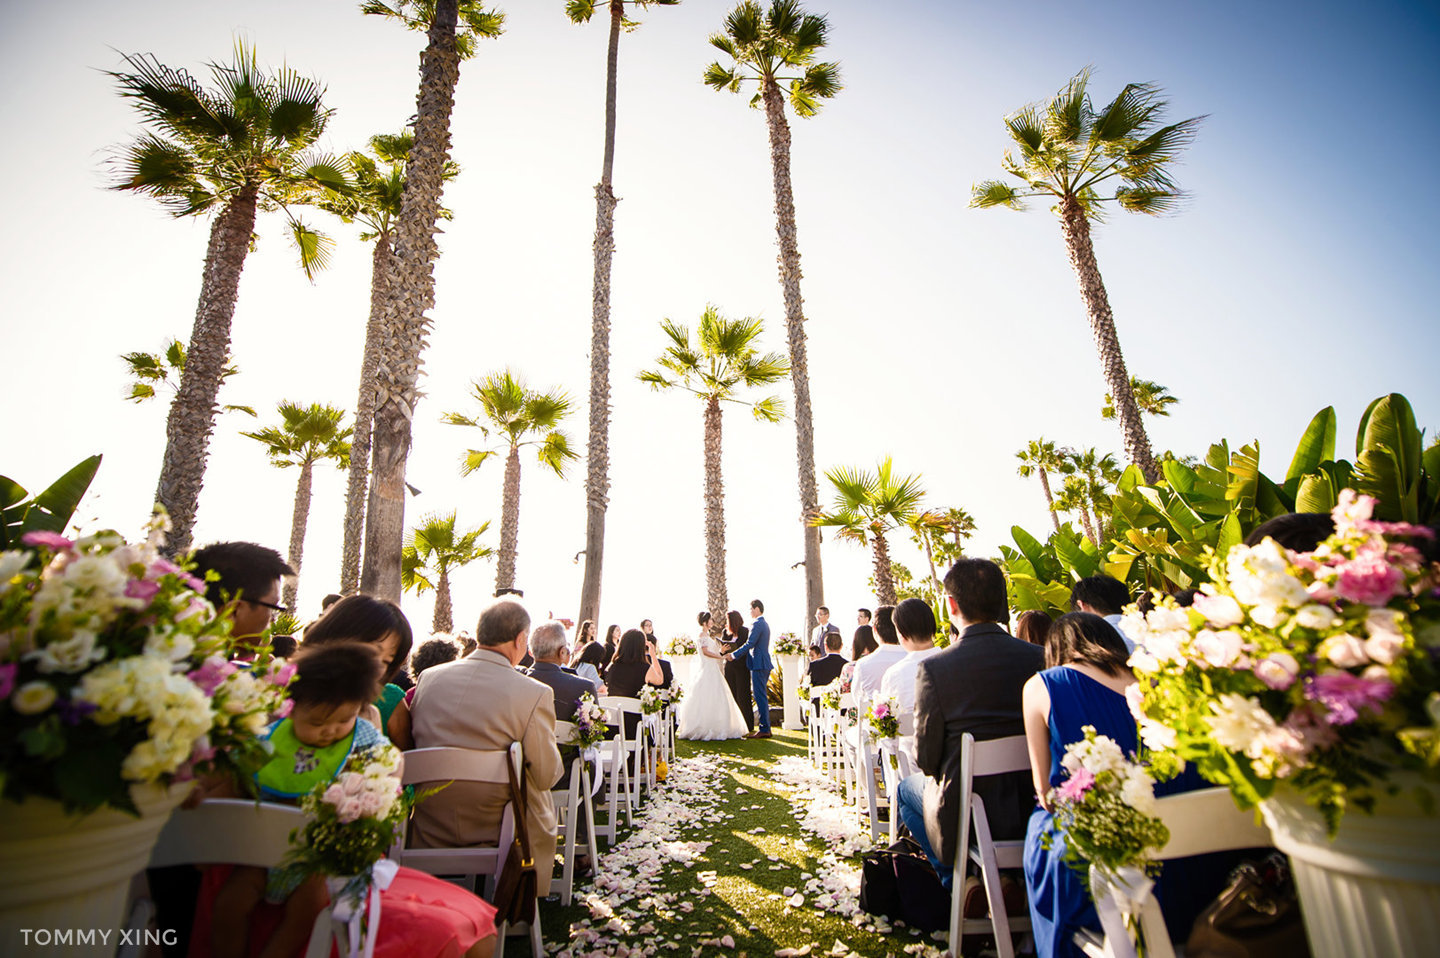 Paradise Point Resort Wedding Xiaolu & Bin San Diego 圣地亚哥婚礼摄影跟拍 Tommy Xing Photography 洛杉矶婚礼婚纱照摄影师 122.jpg